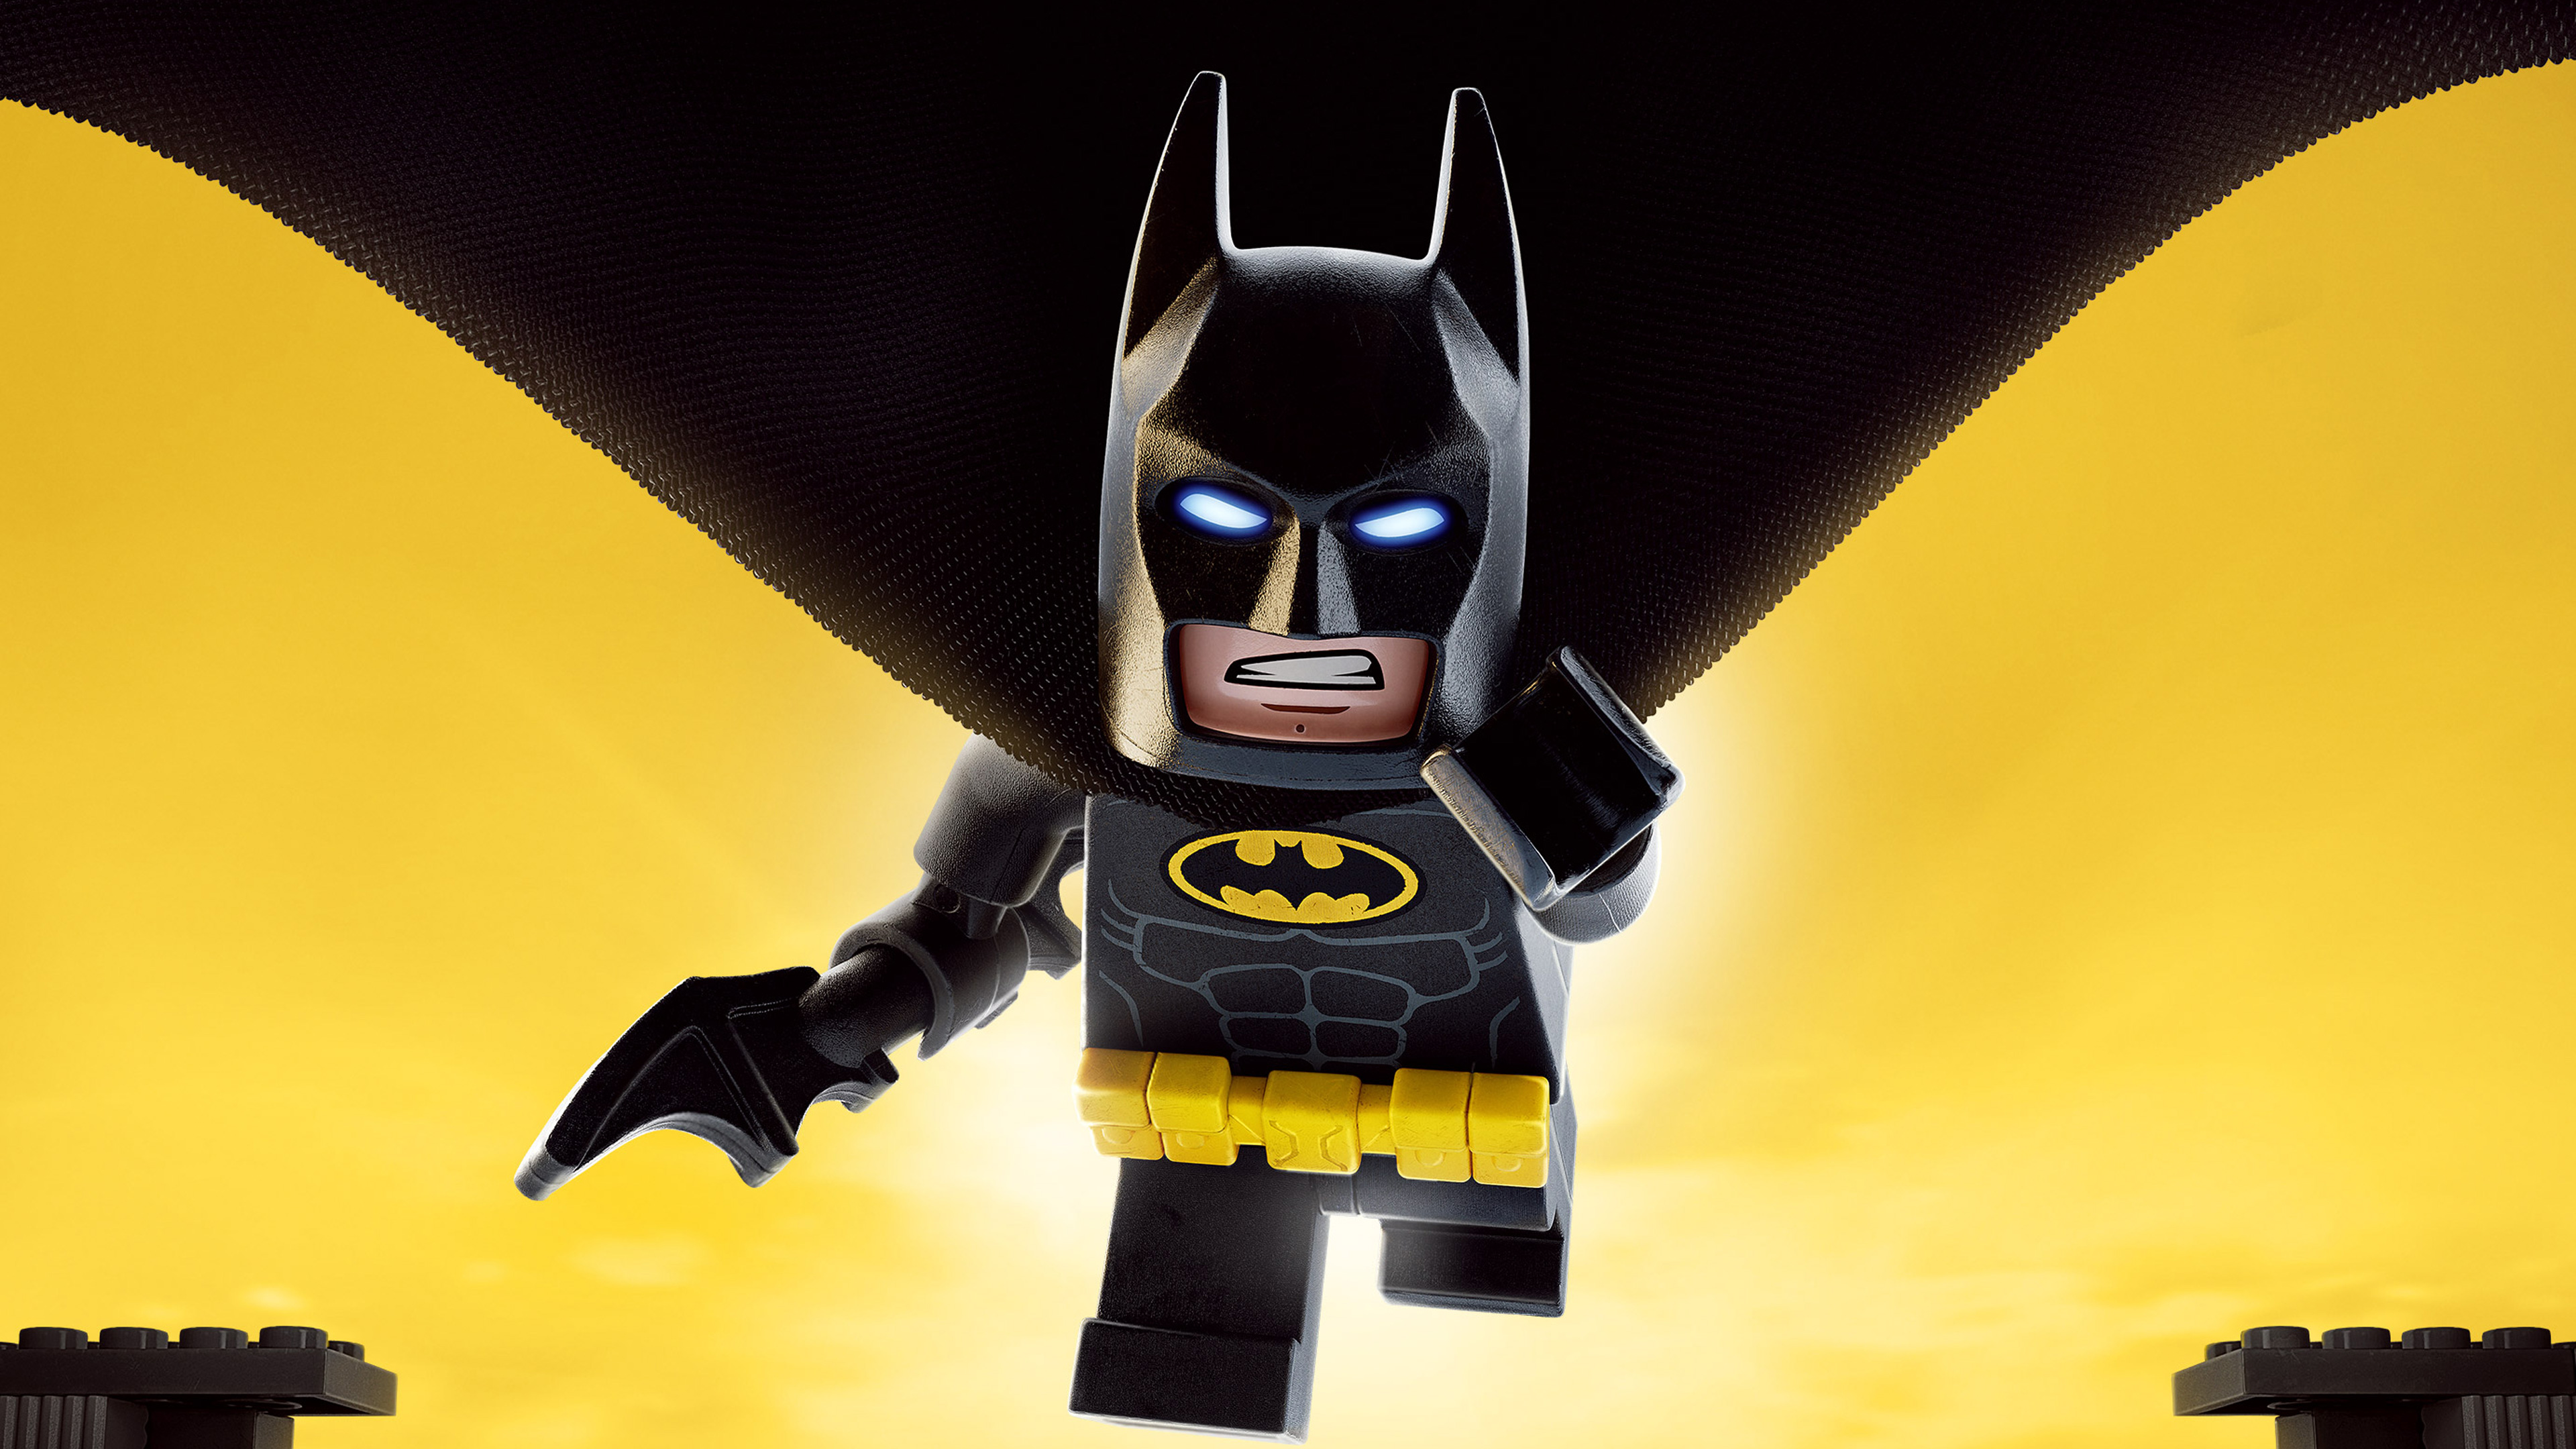 The Lego Batman Movie wallpaper 5